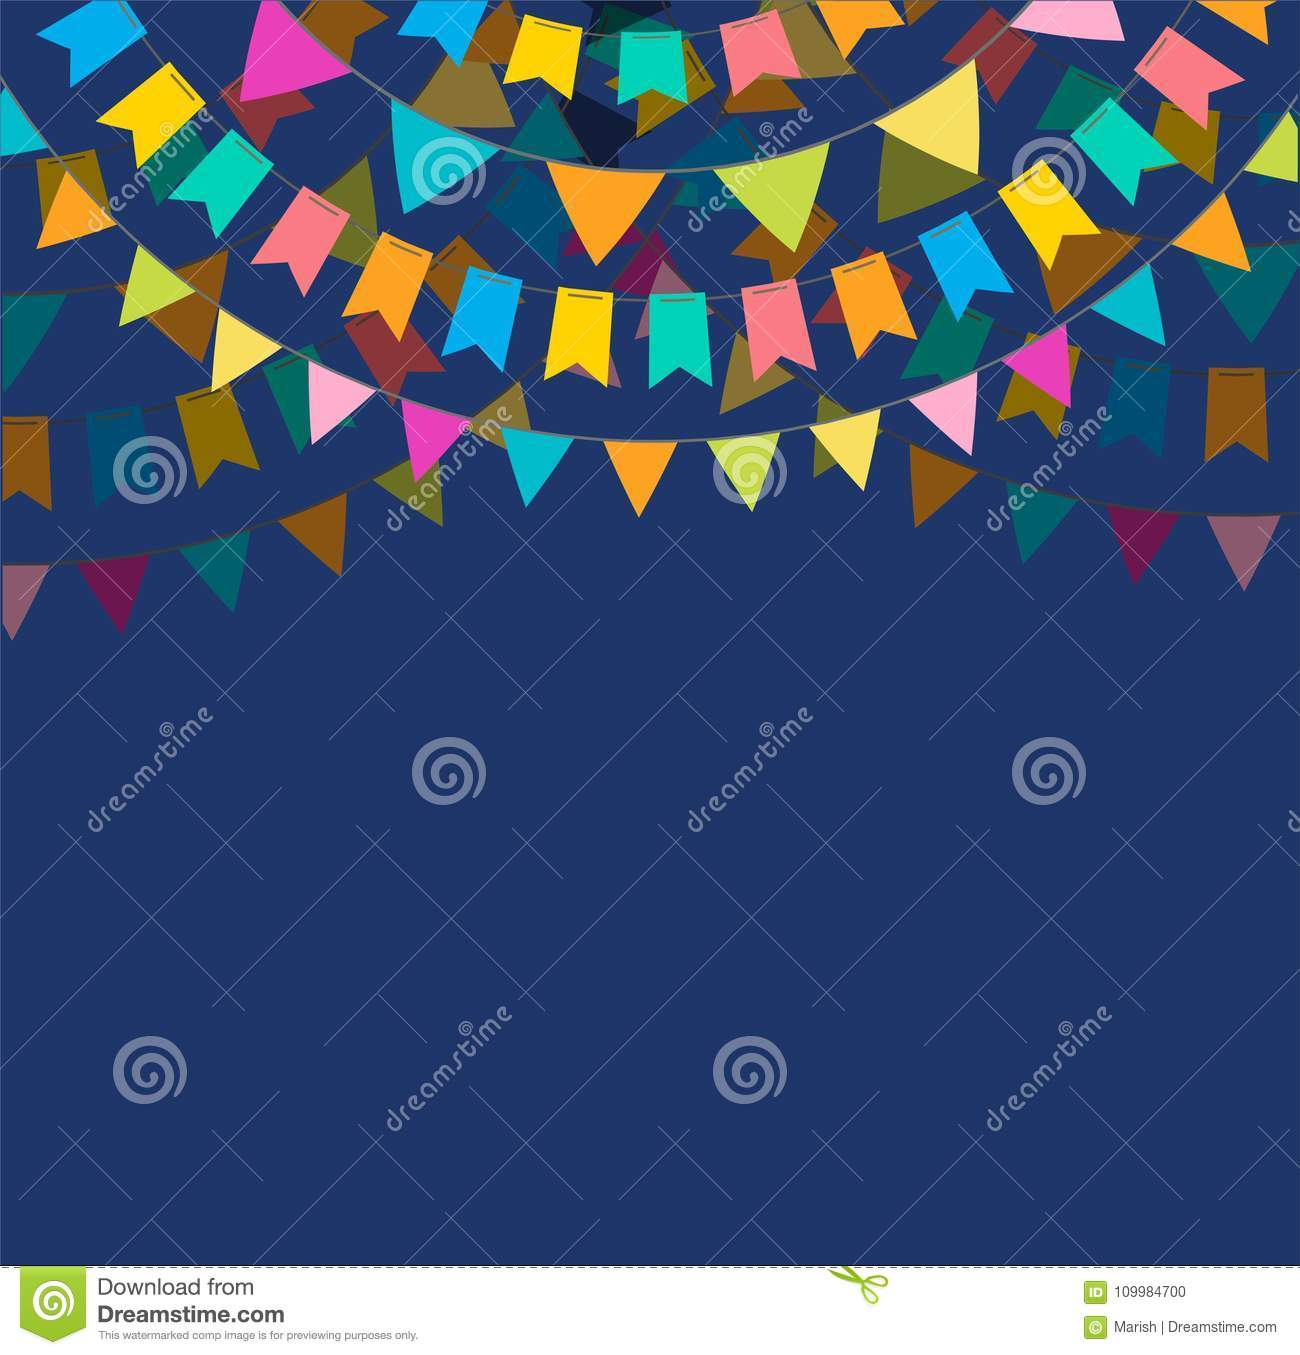 Fiesta banner and poster design with flags, decorations